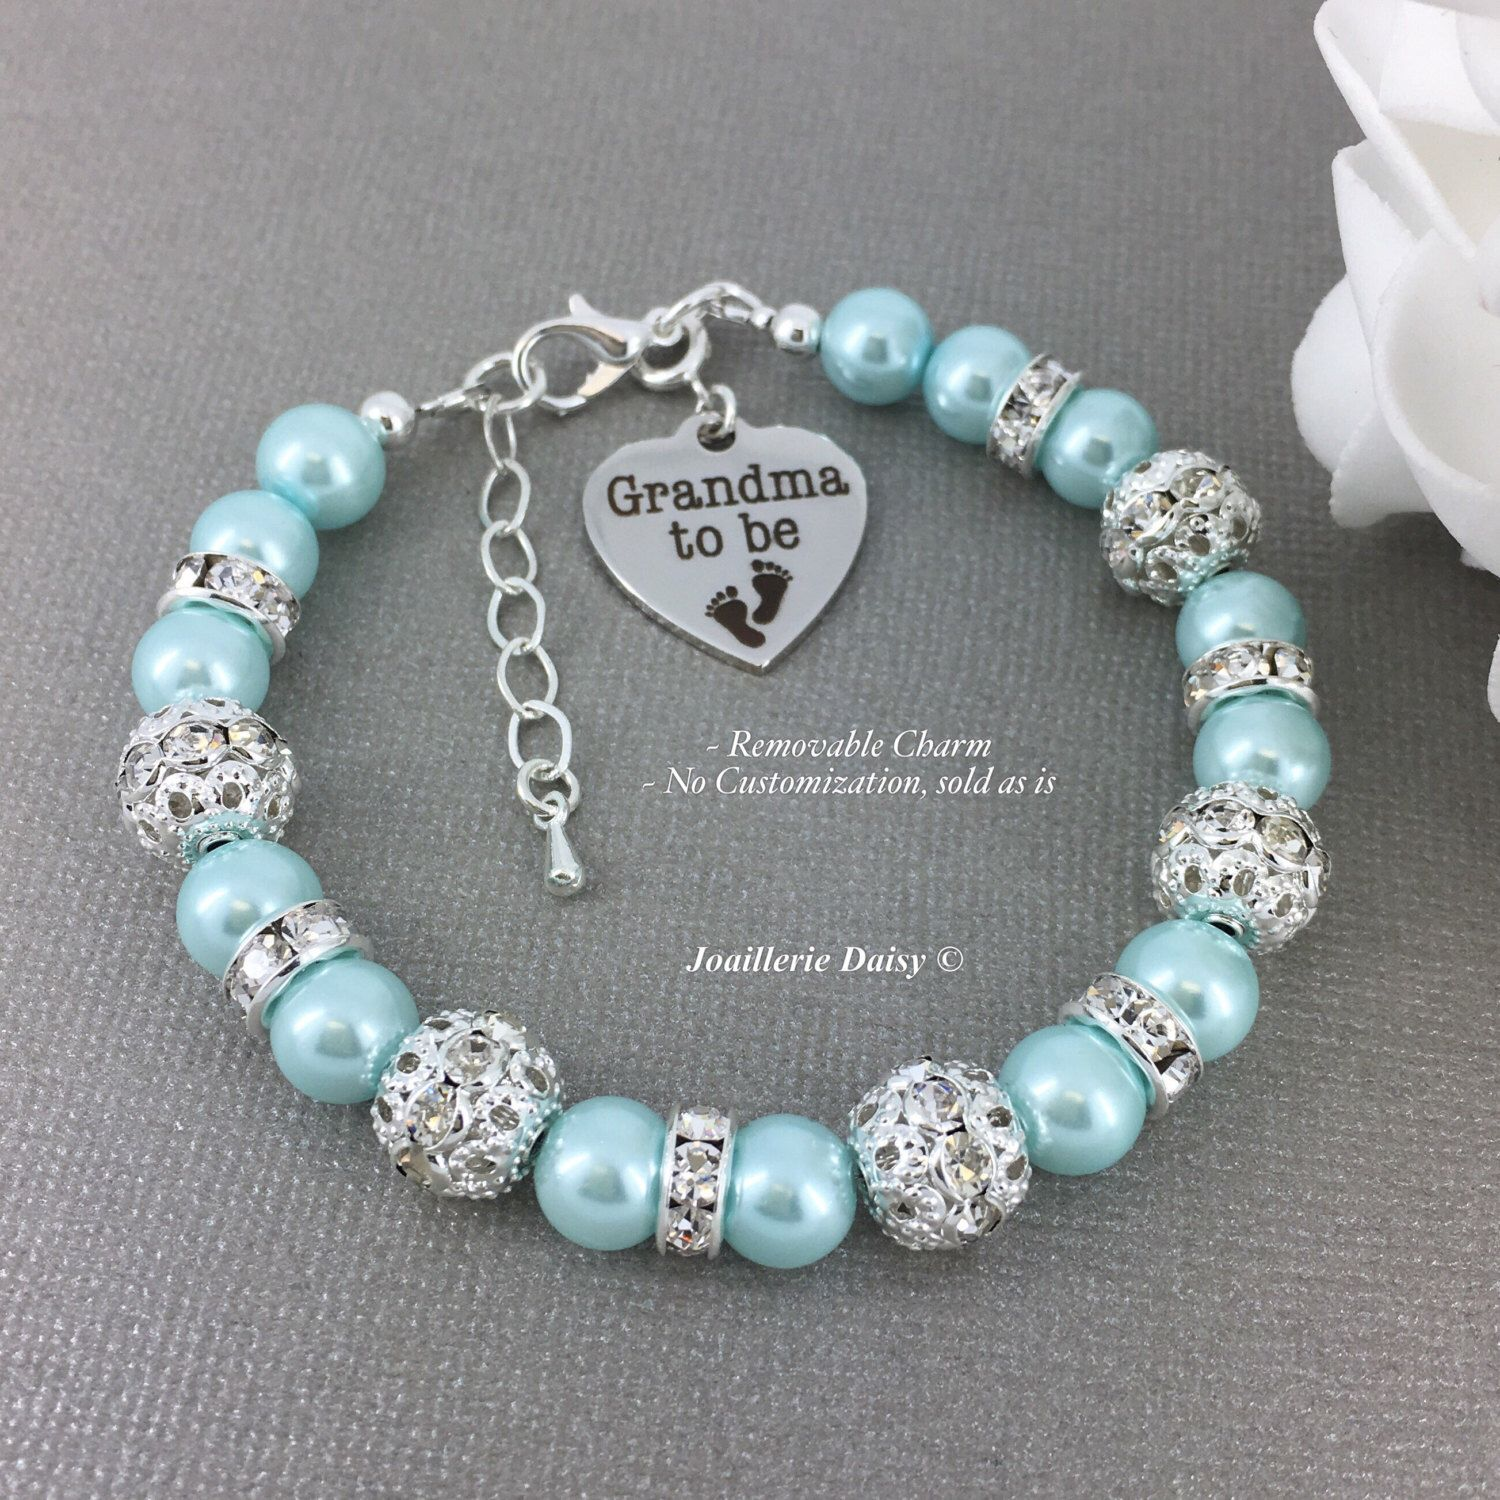 Grandma To Be Charm Bracelet Gift For Grandmother Surprise